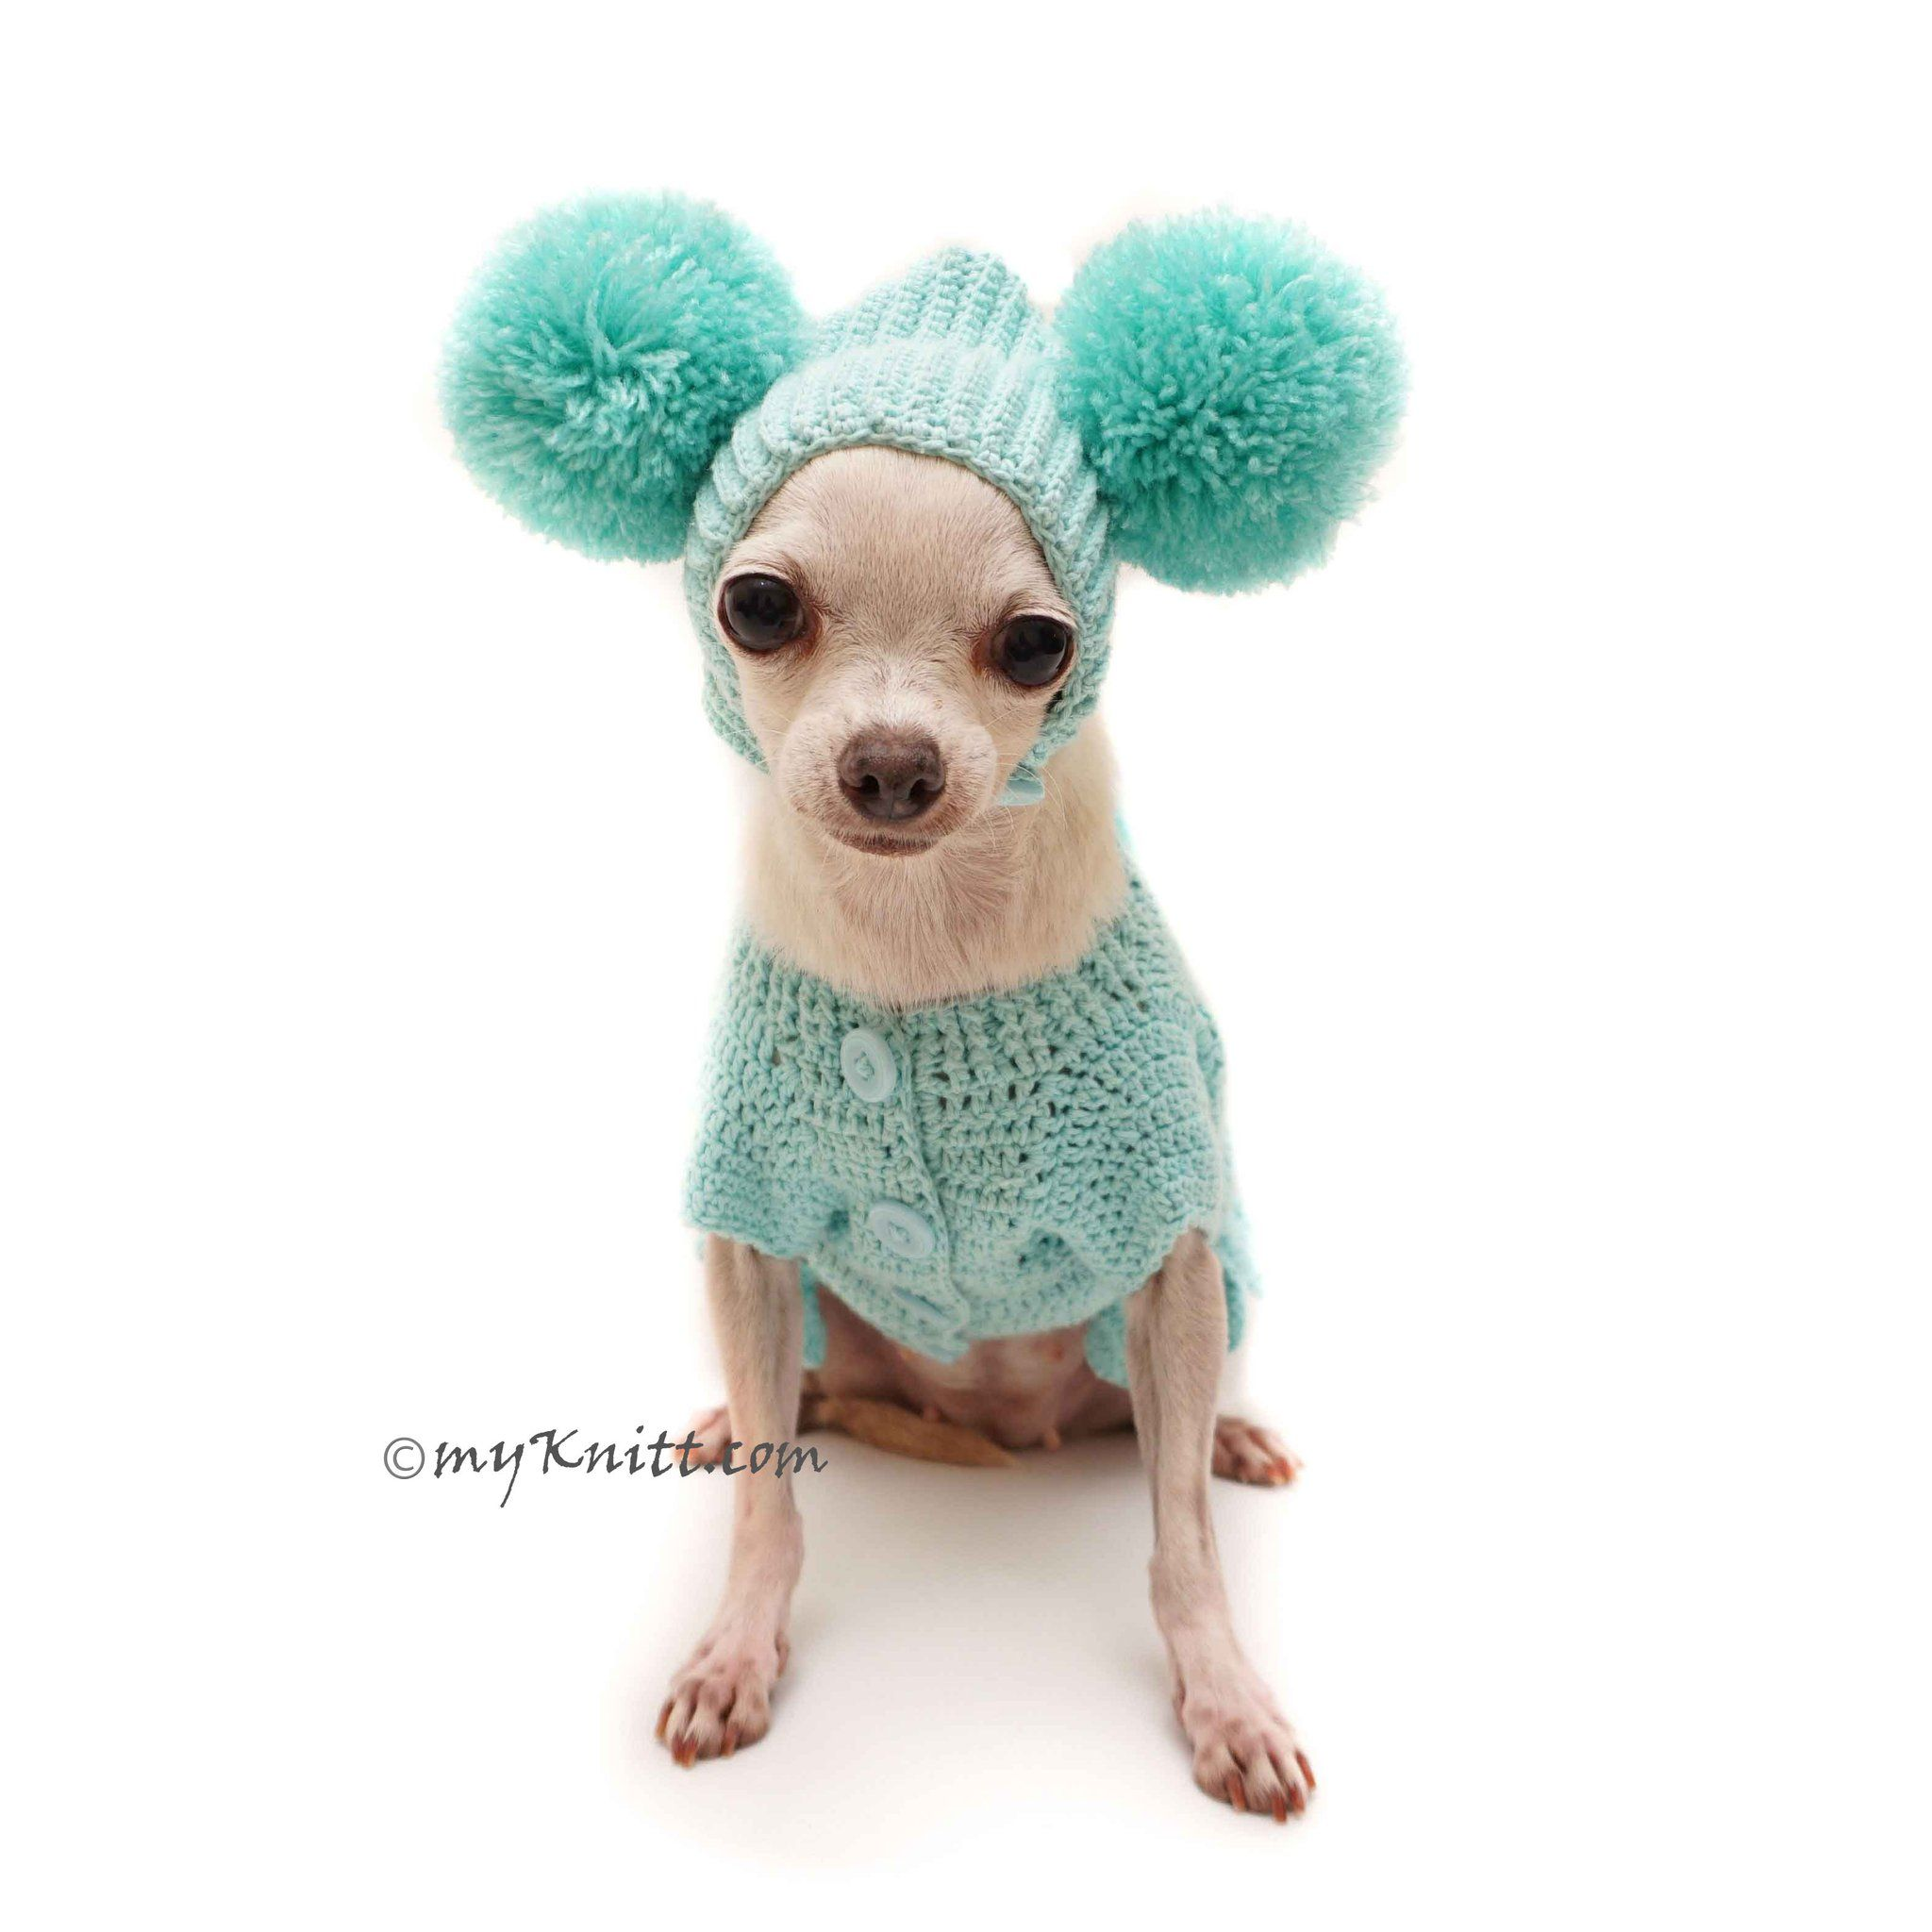 Easter Bunny Costume In Tiffany Blue Color Handmade Crochet Funny